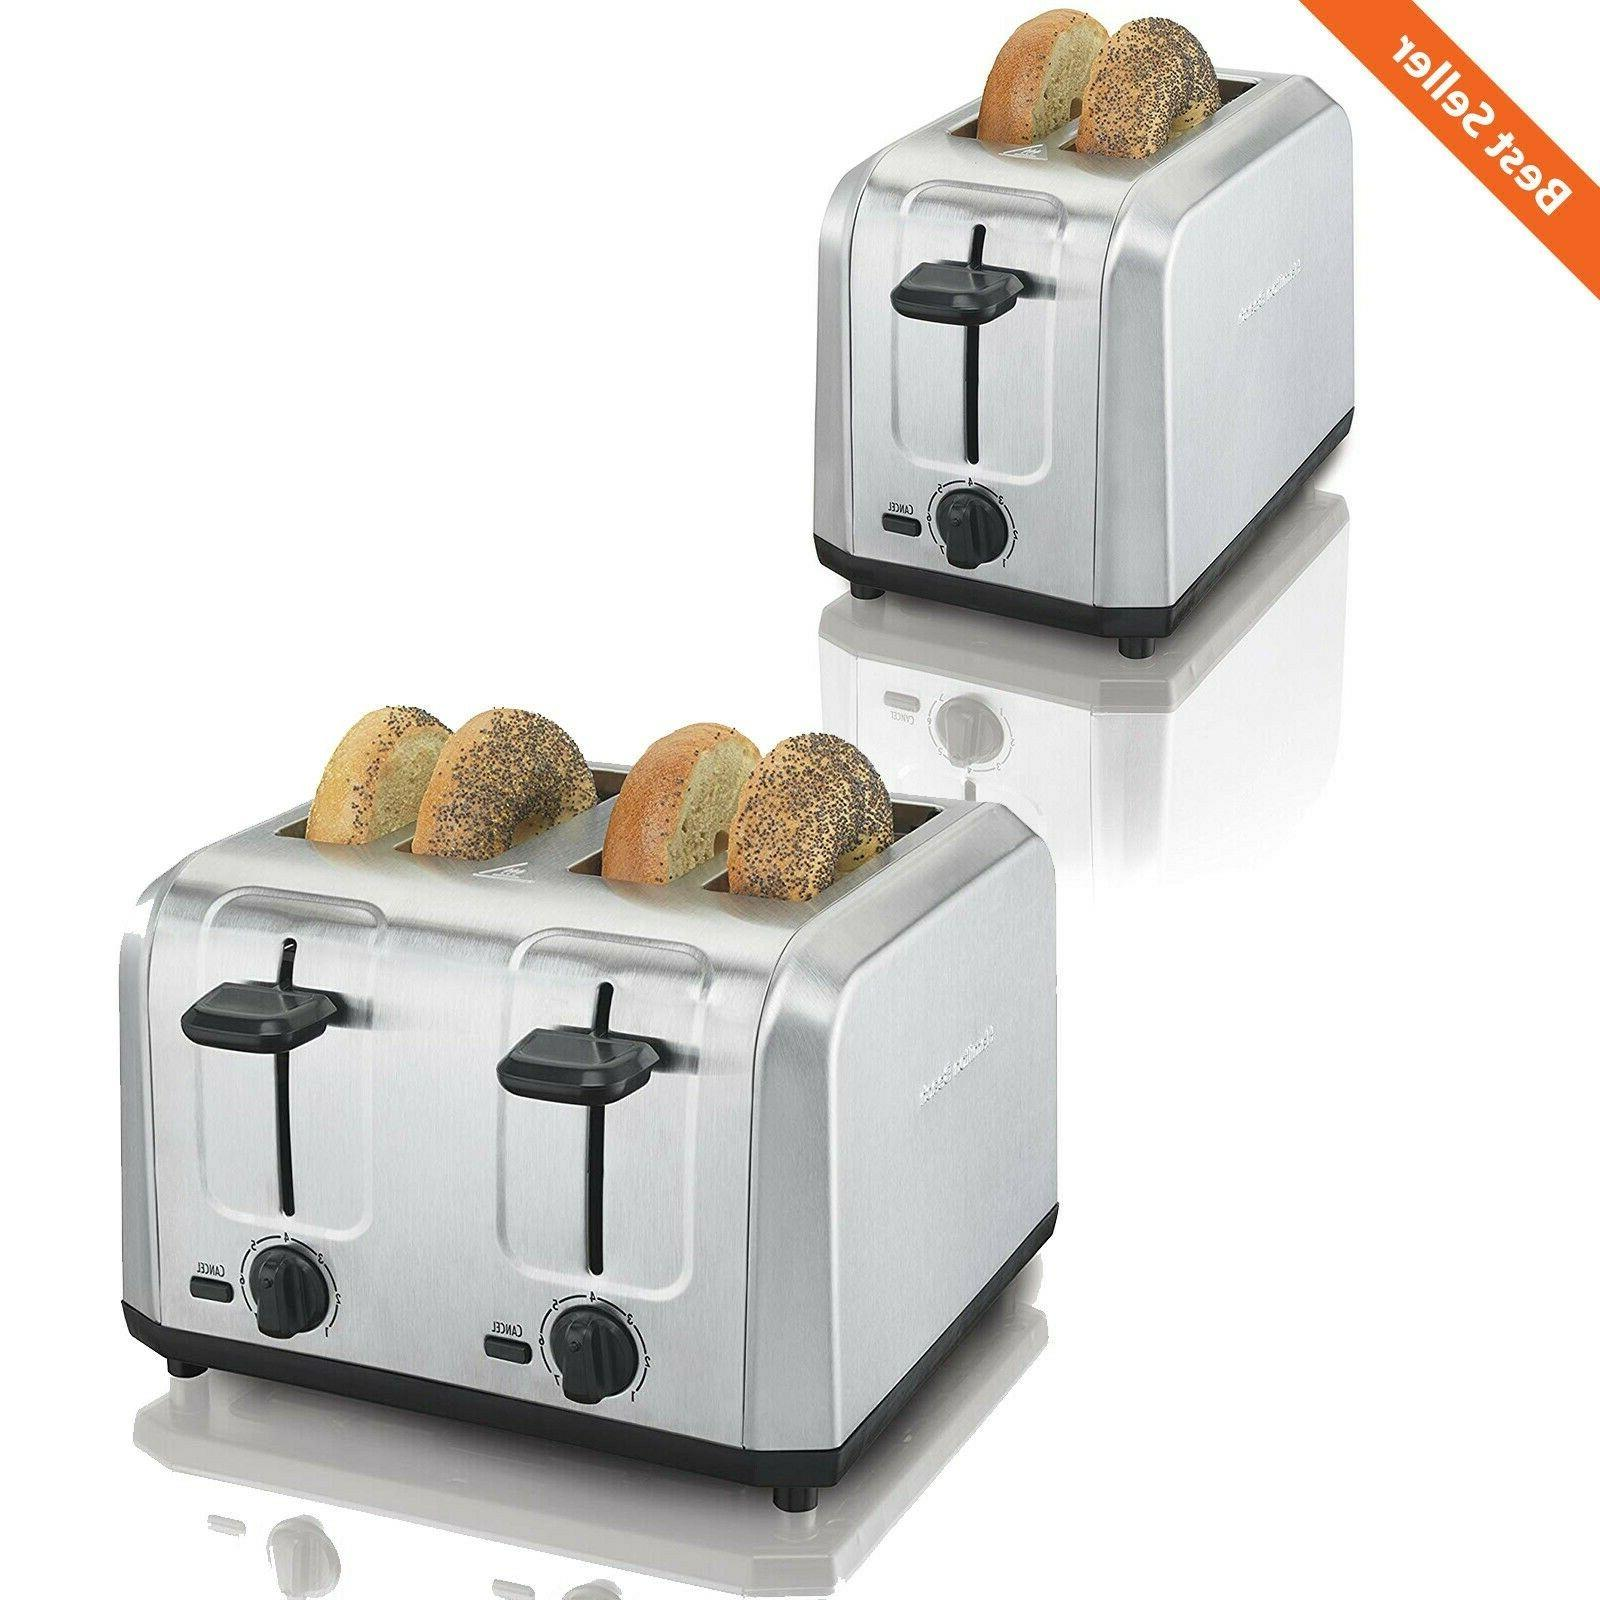 brushed stainless steel 2 4 slice toaster